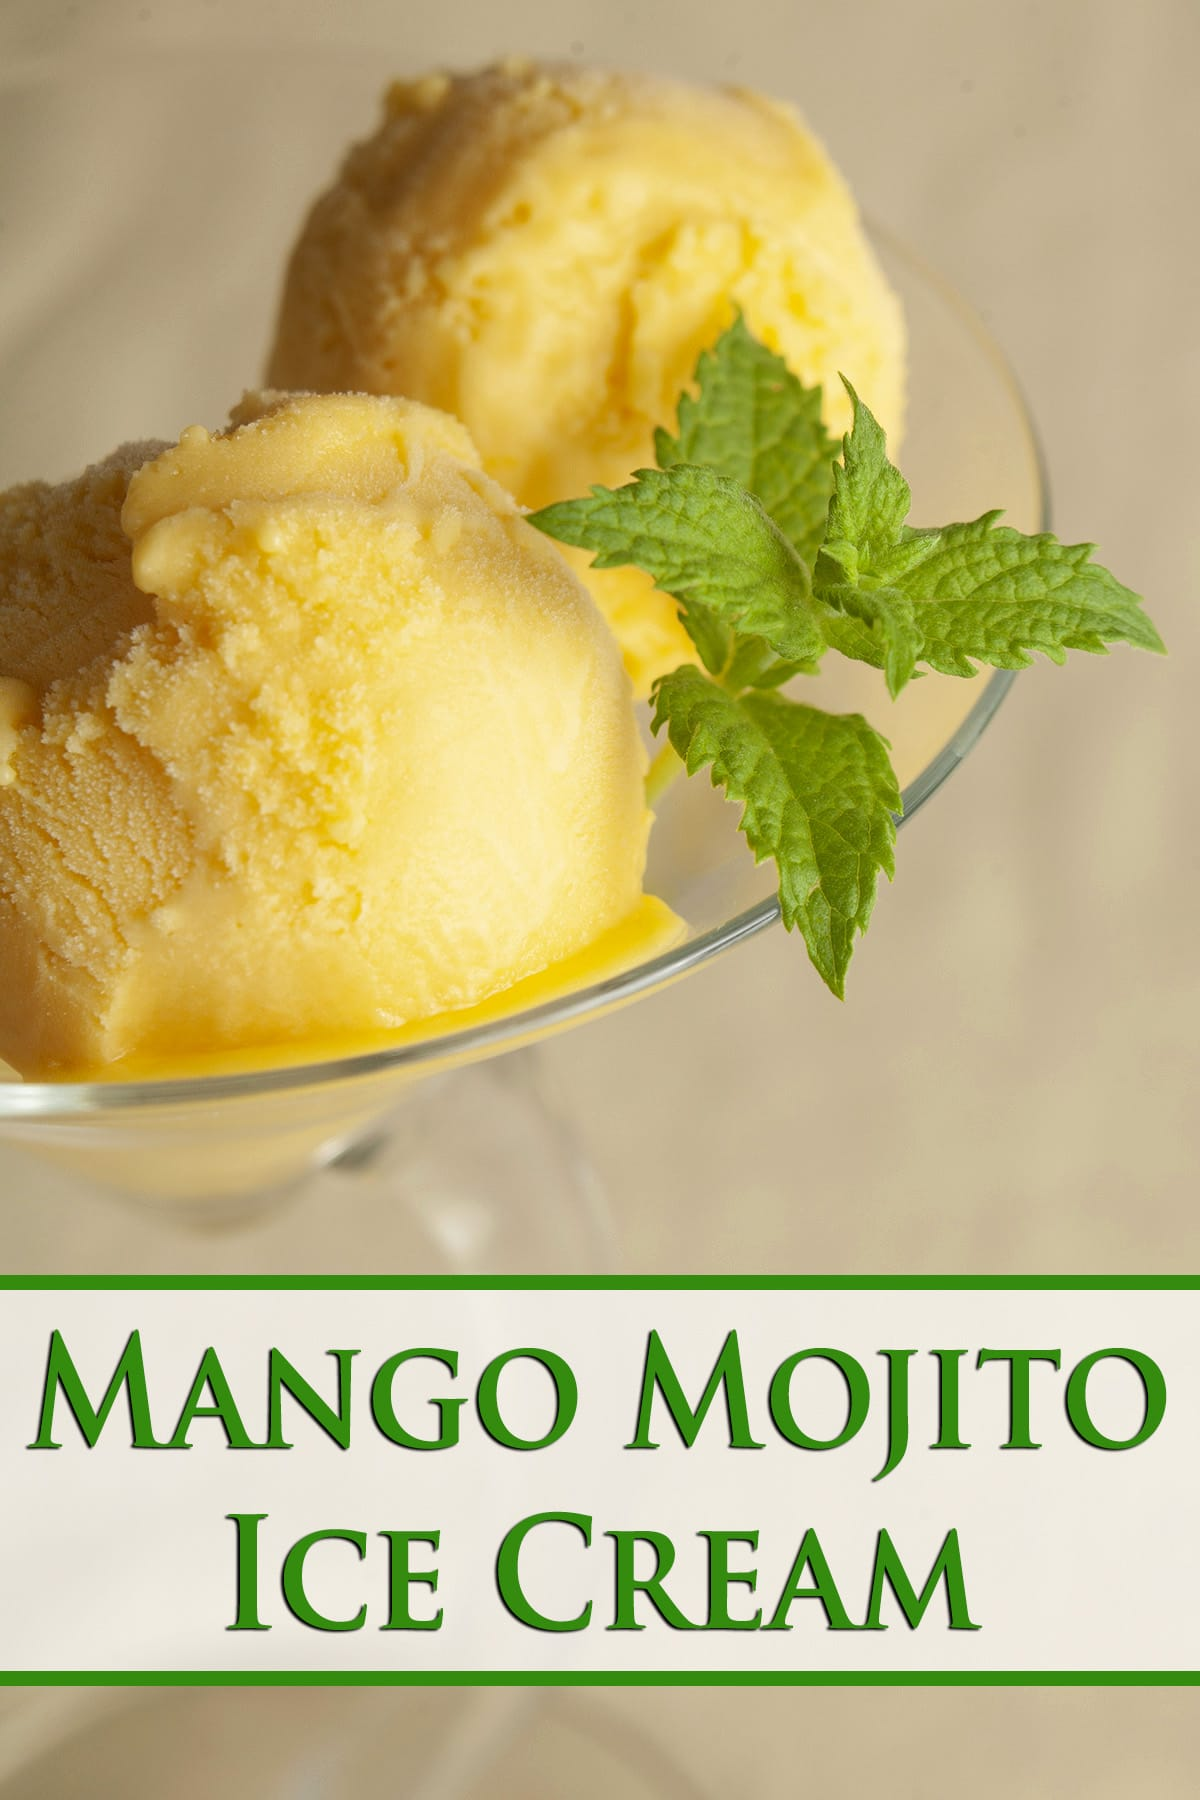 Two scoops of a rich yellow mango mojito ice cream, in a martini glass. It's garnished with a sprig of fresh mint.